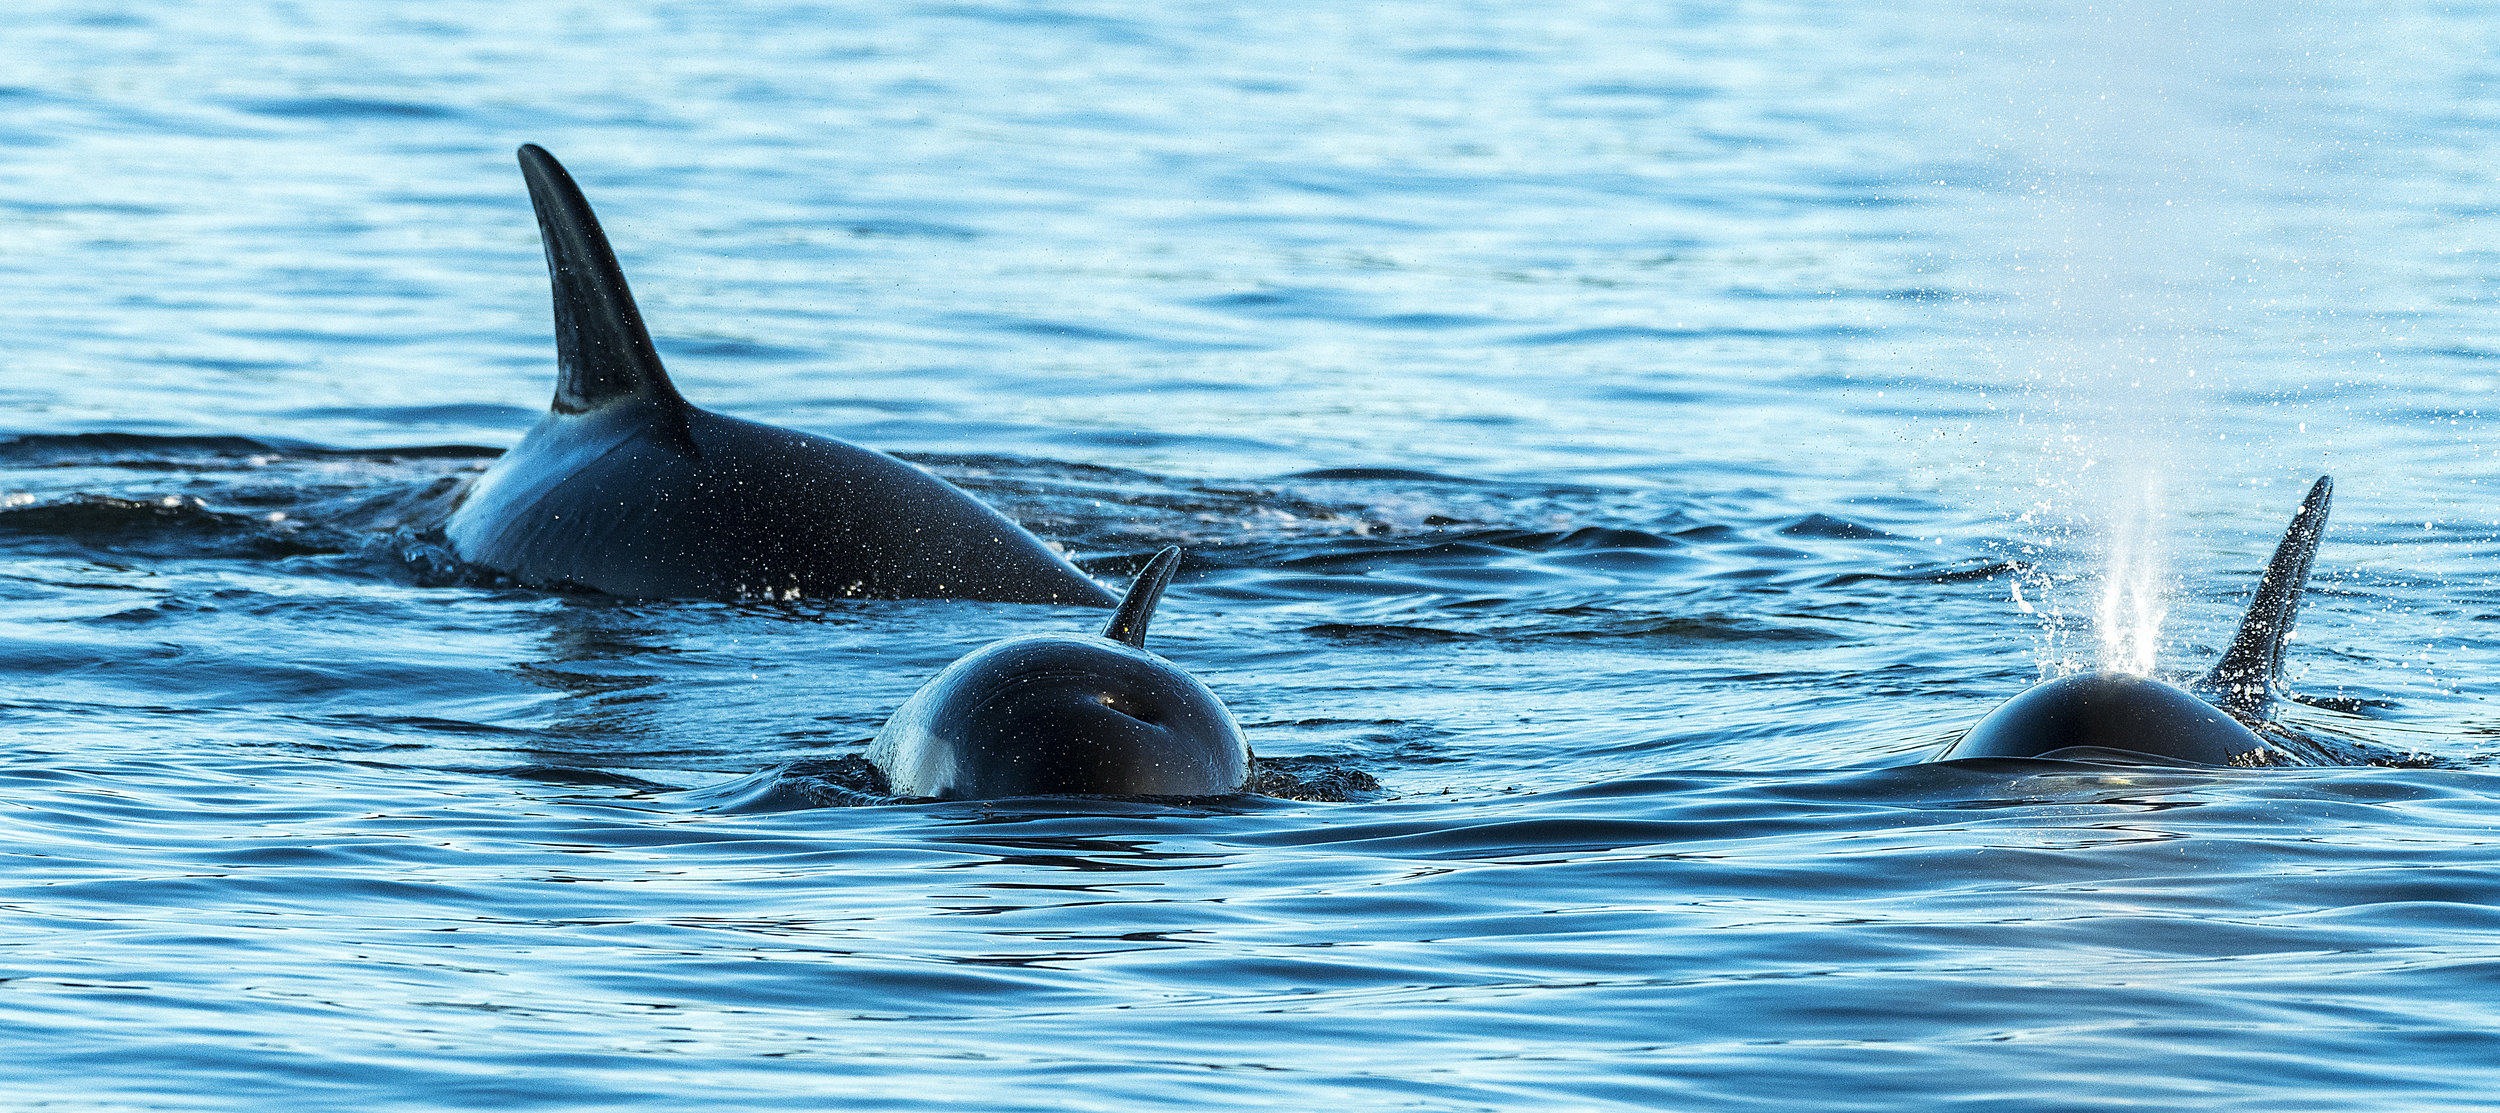 Orca whales hunting seals Chris Pepper